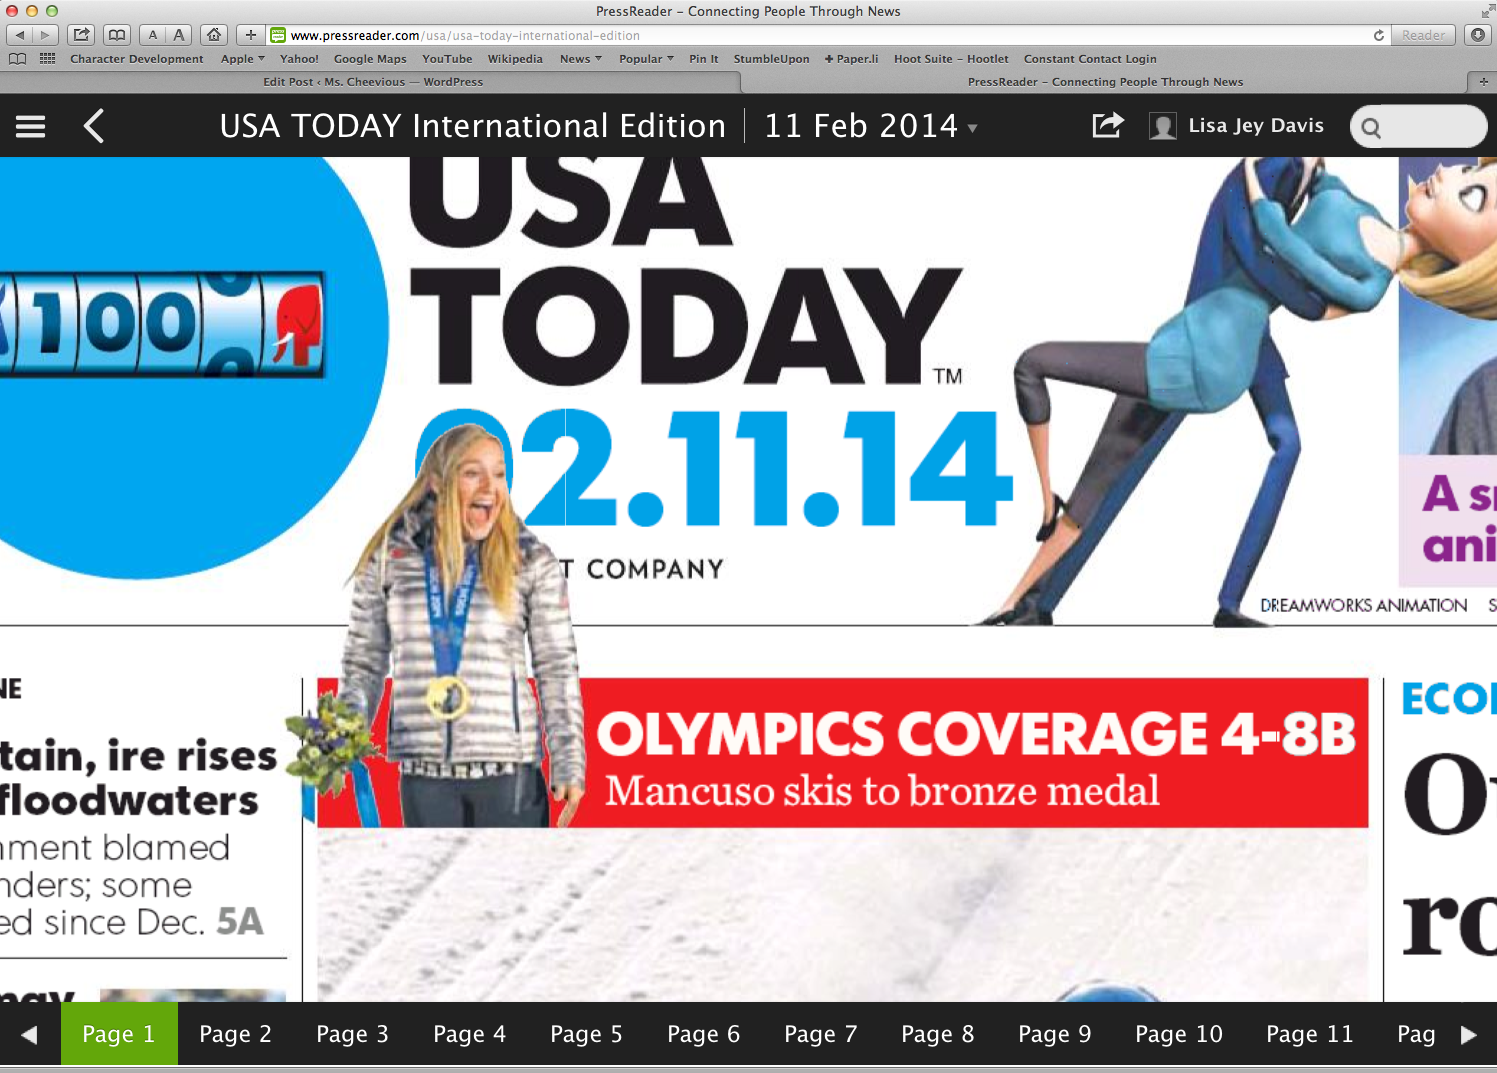 USA Today International on Press Reader